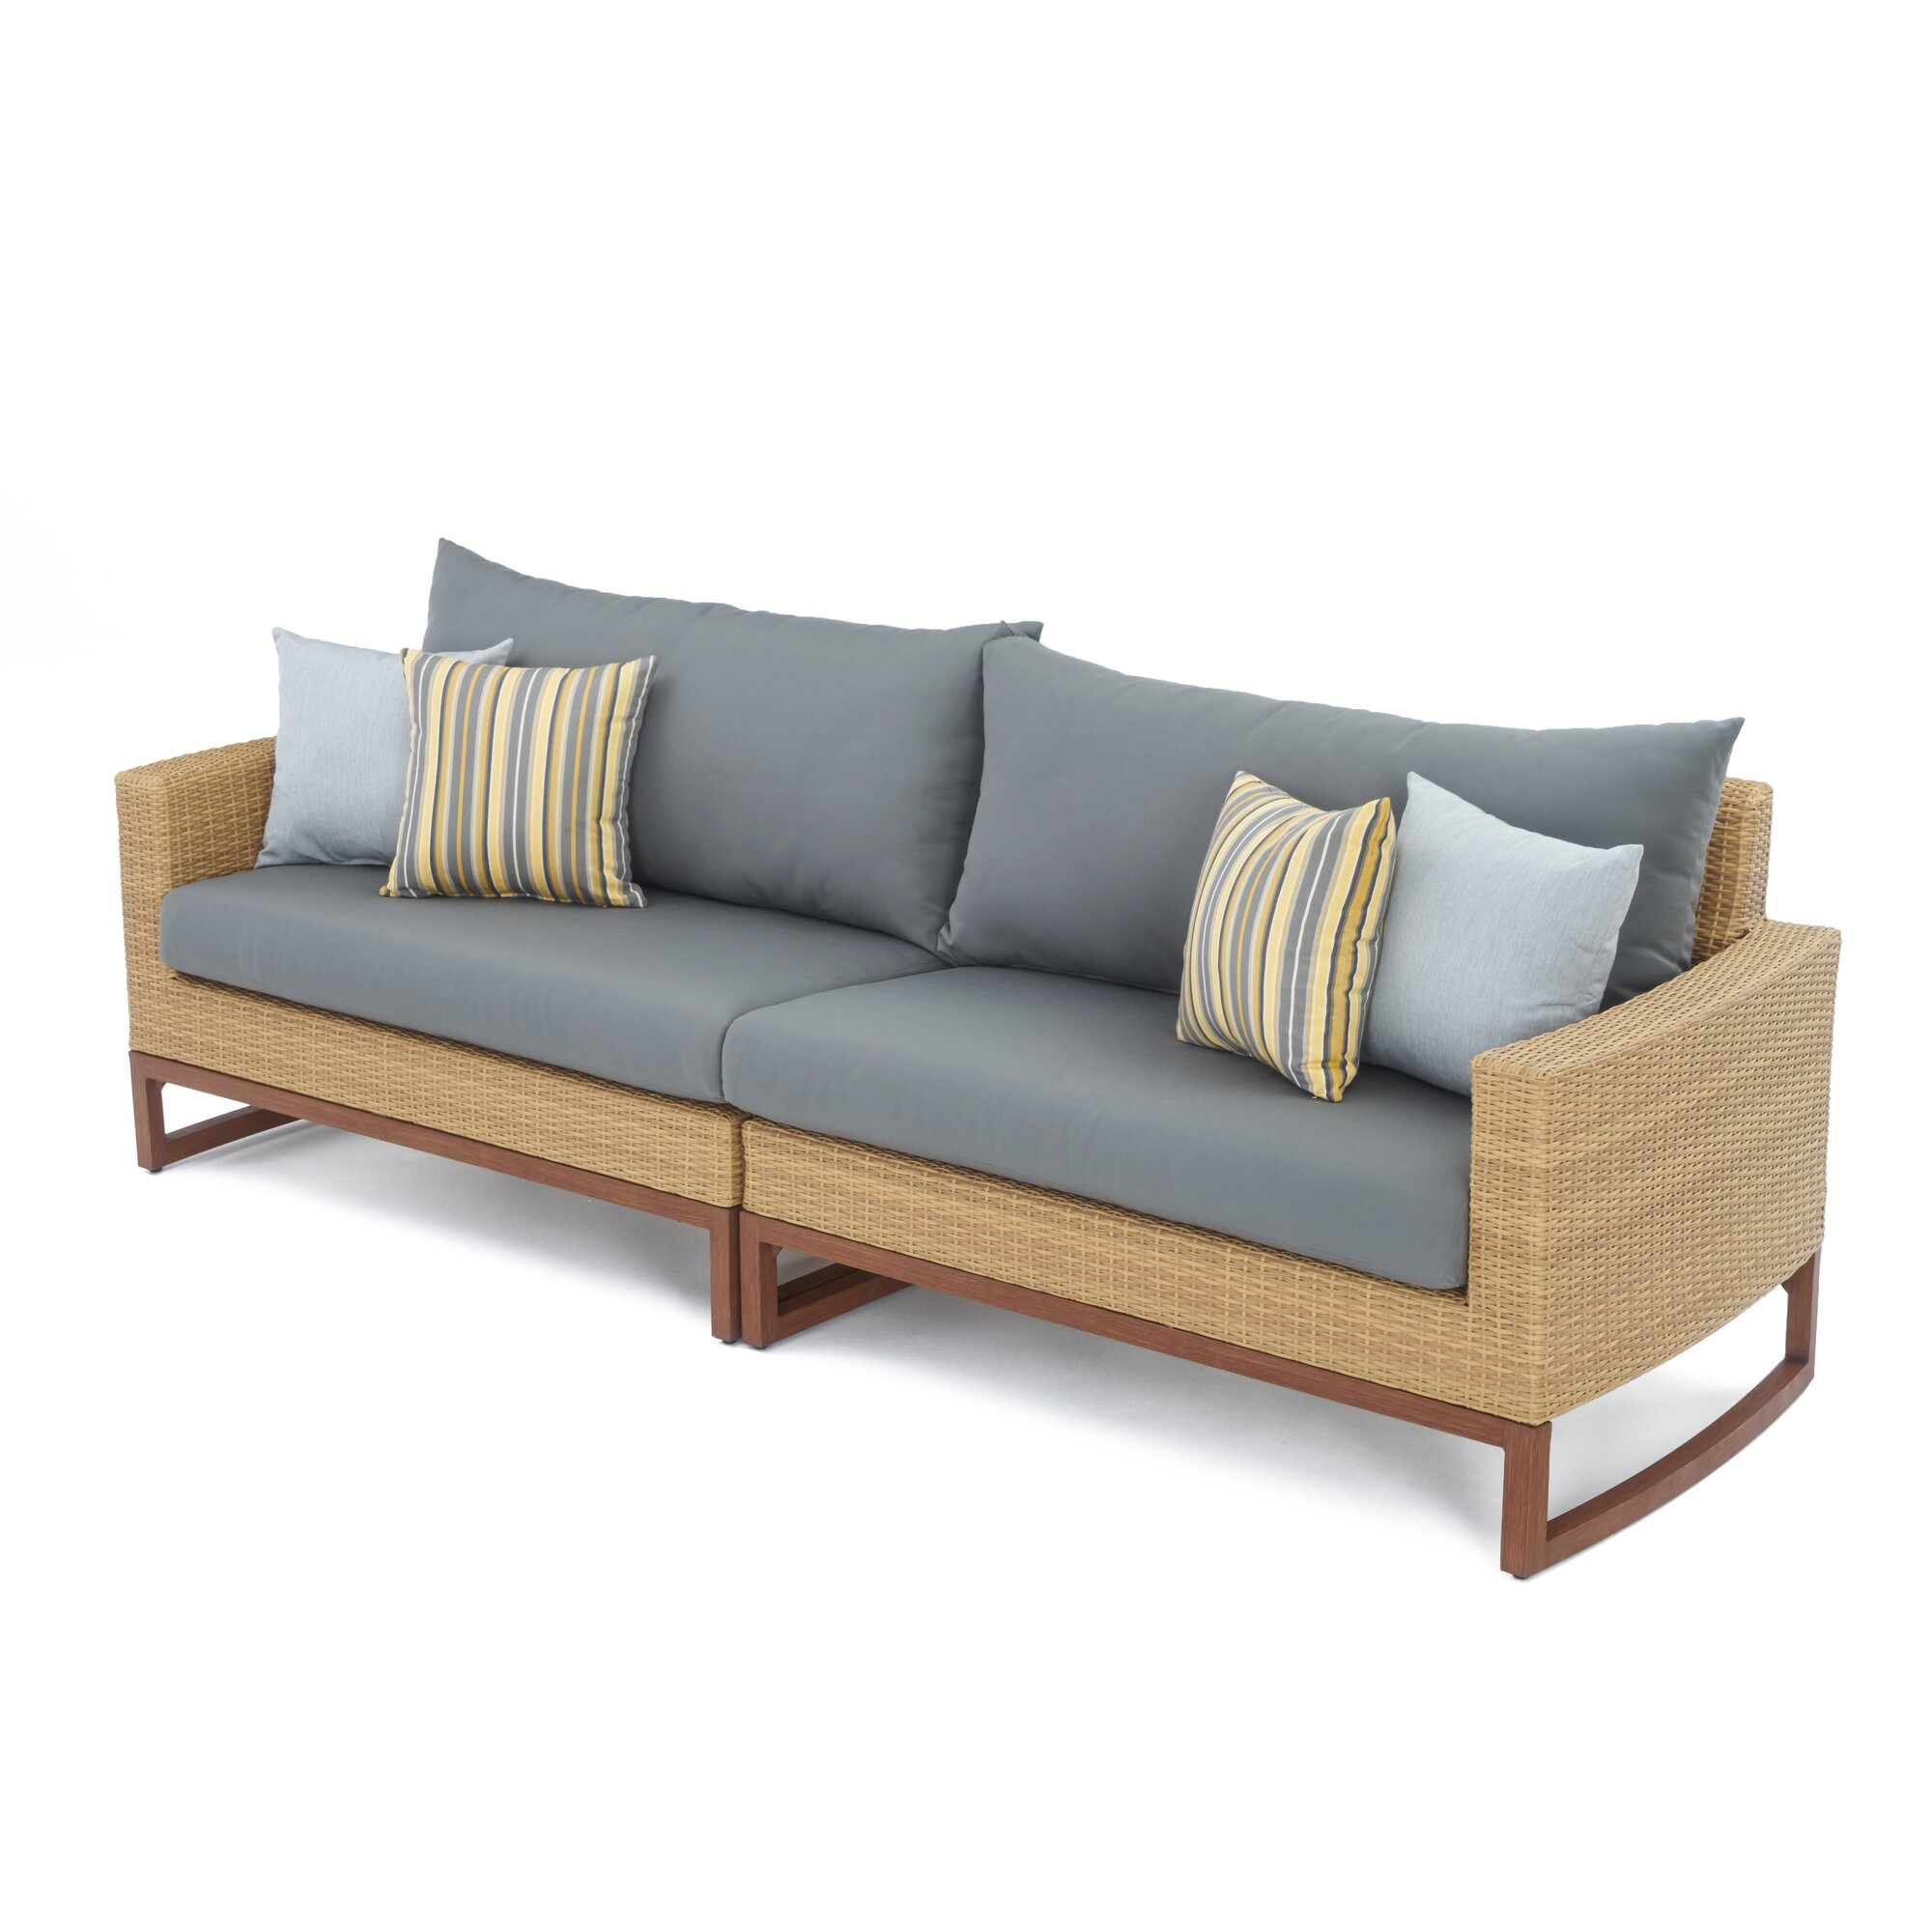 Addison 6 Piece Sectional Seating Group with Cushions : Joss u0026 Main